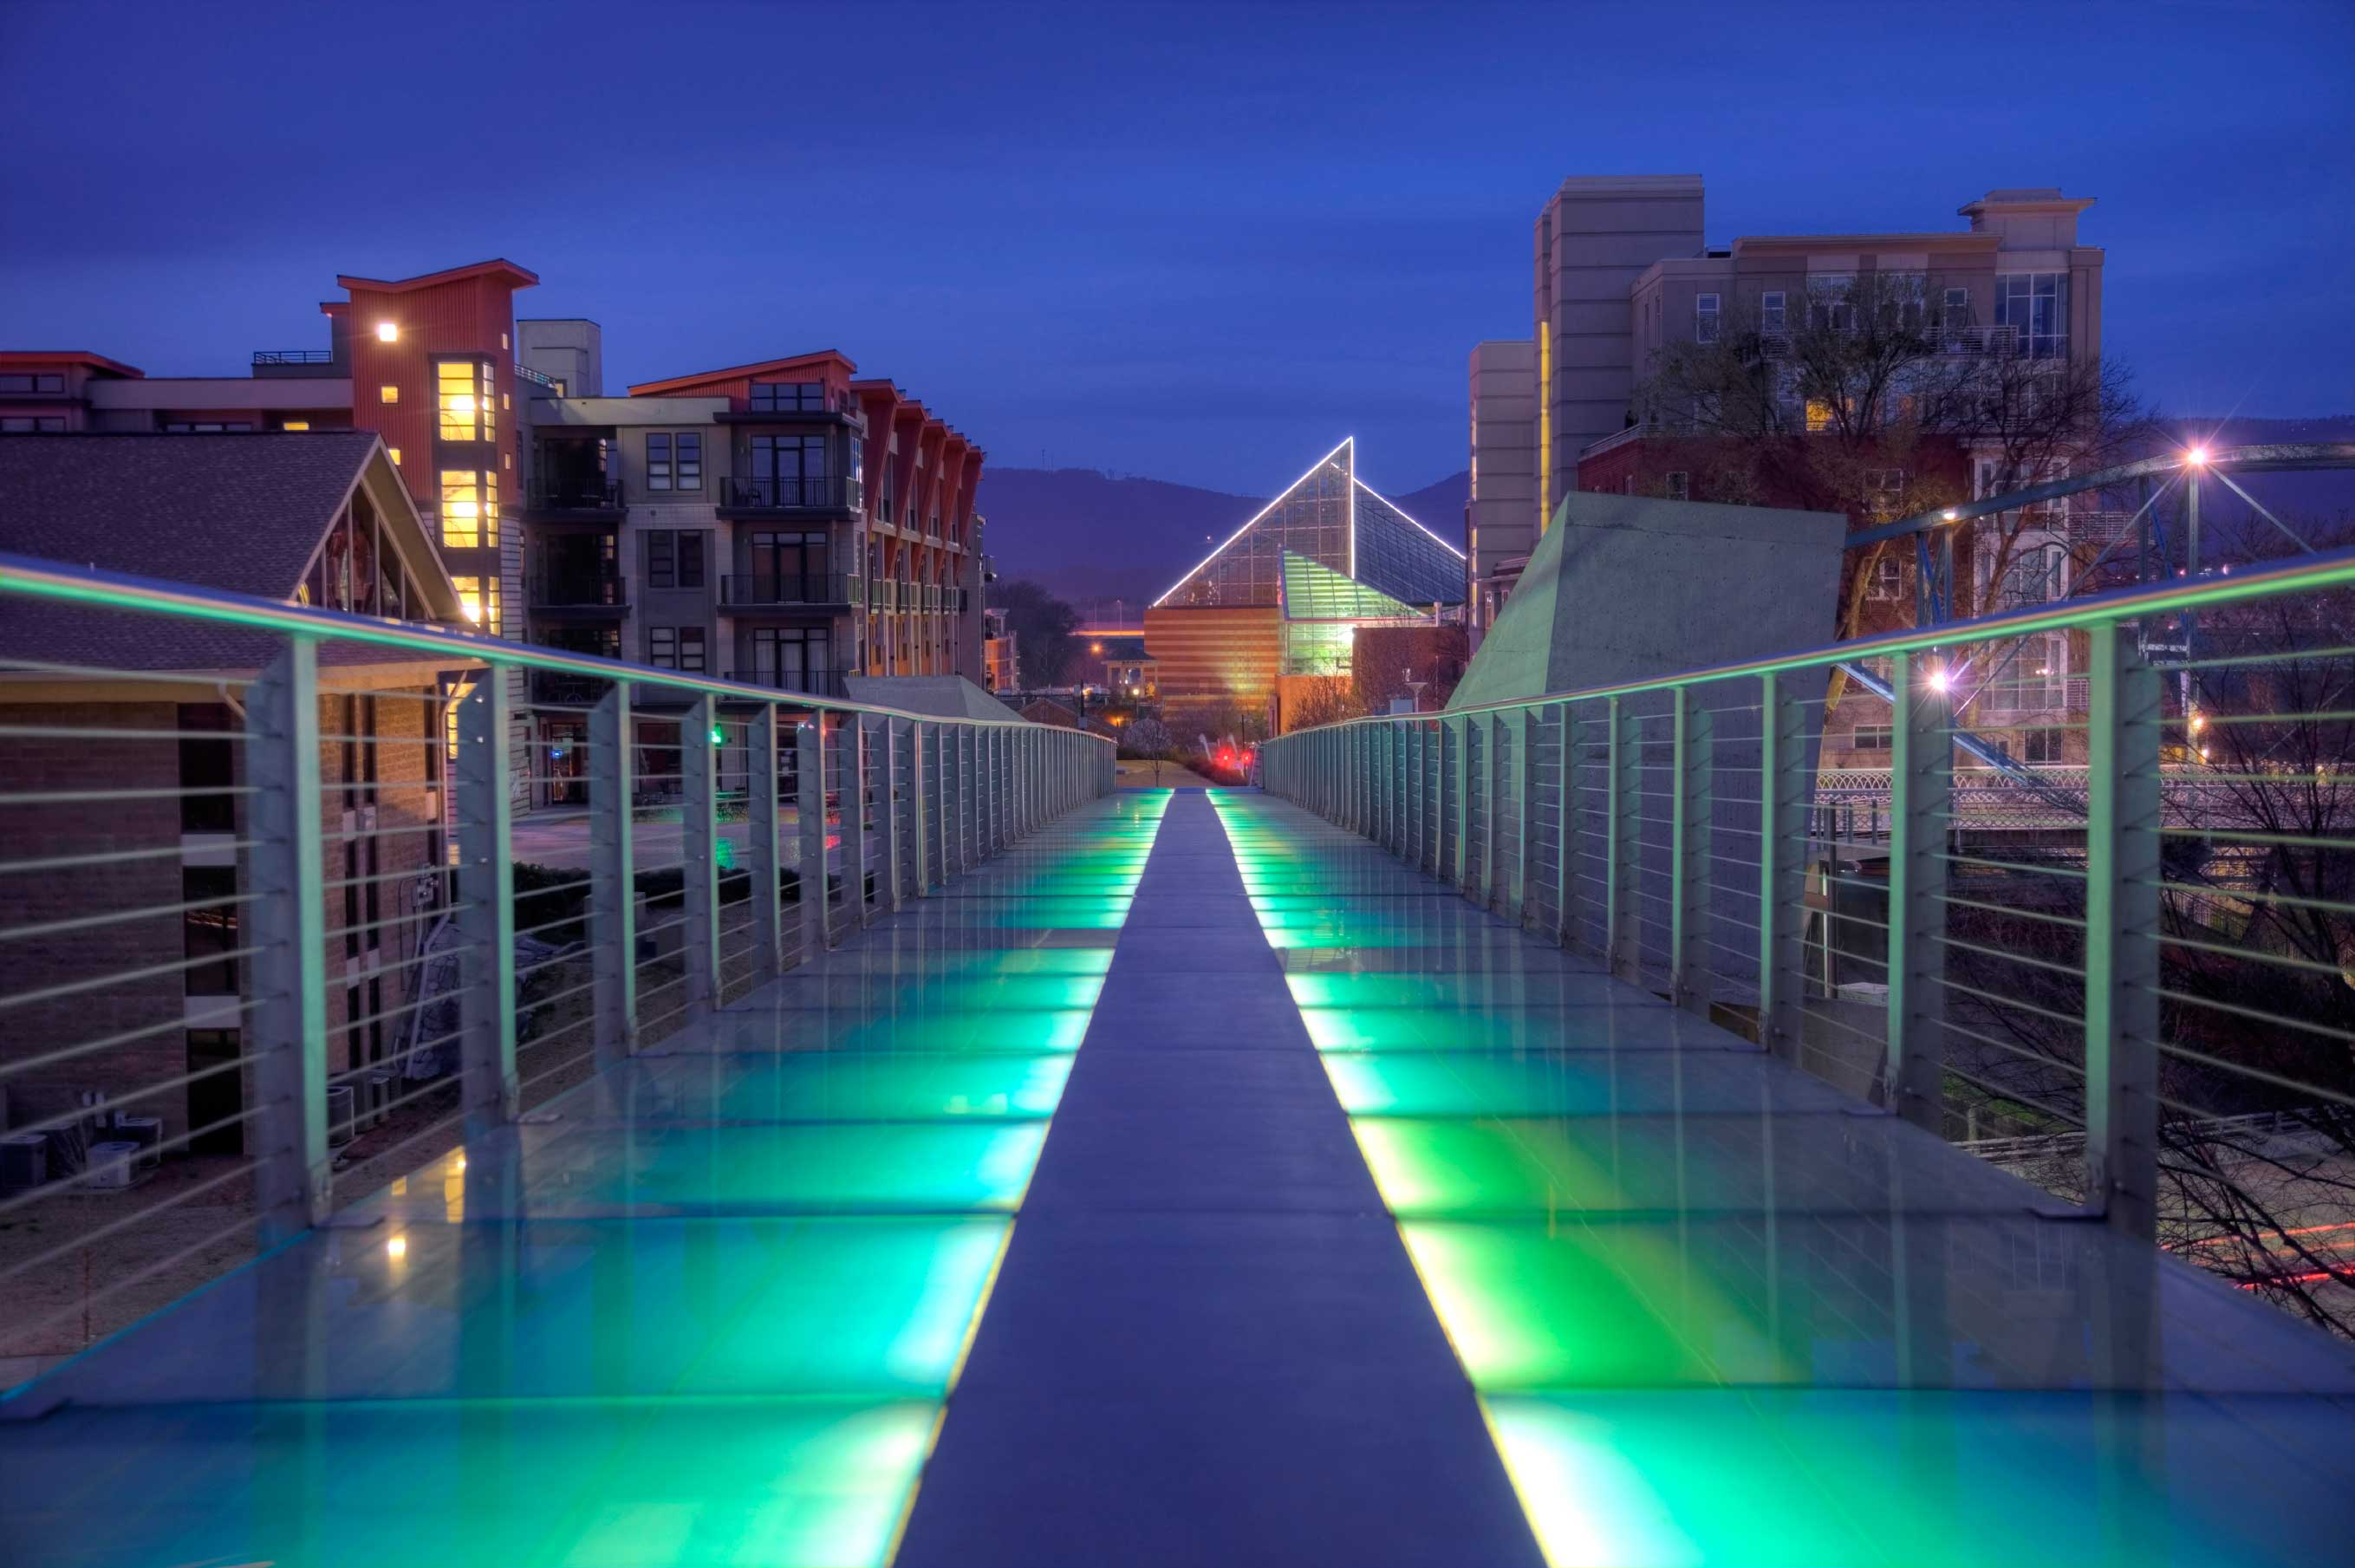 Glass Bridge - Chattanooga, Tennessee